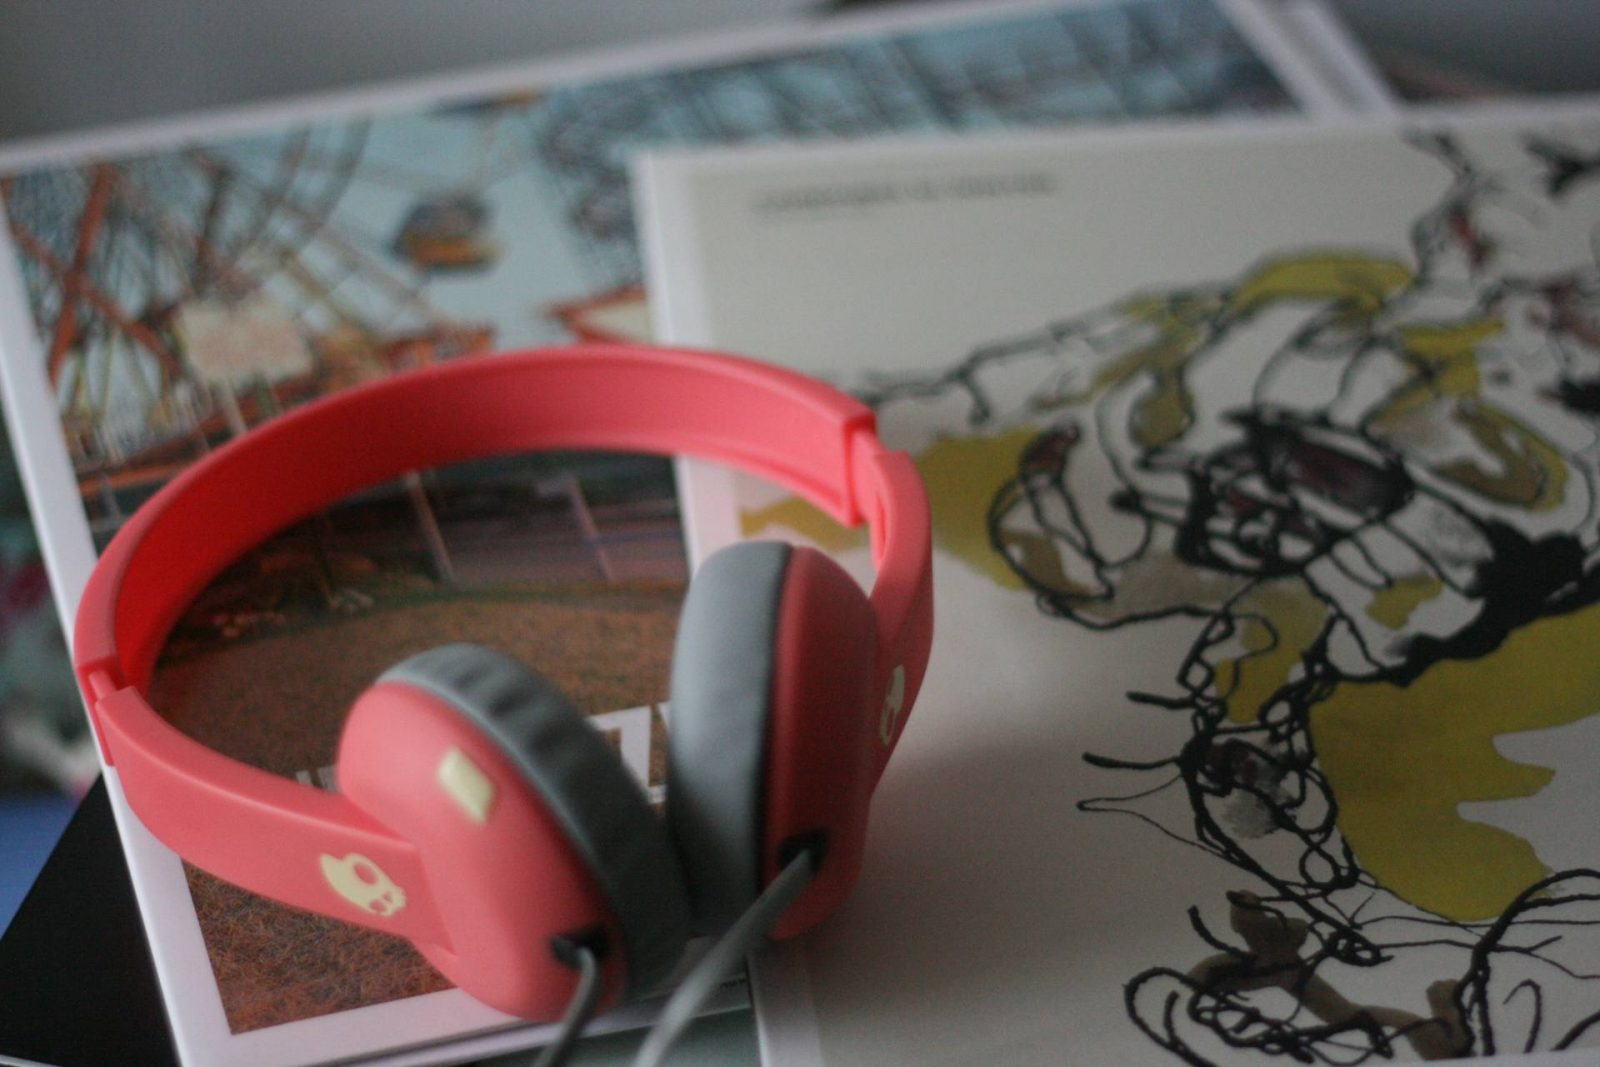 Culture Consumption February 2017 - The Menzingers and Campfires in Winter